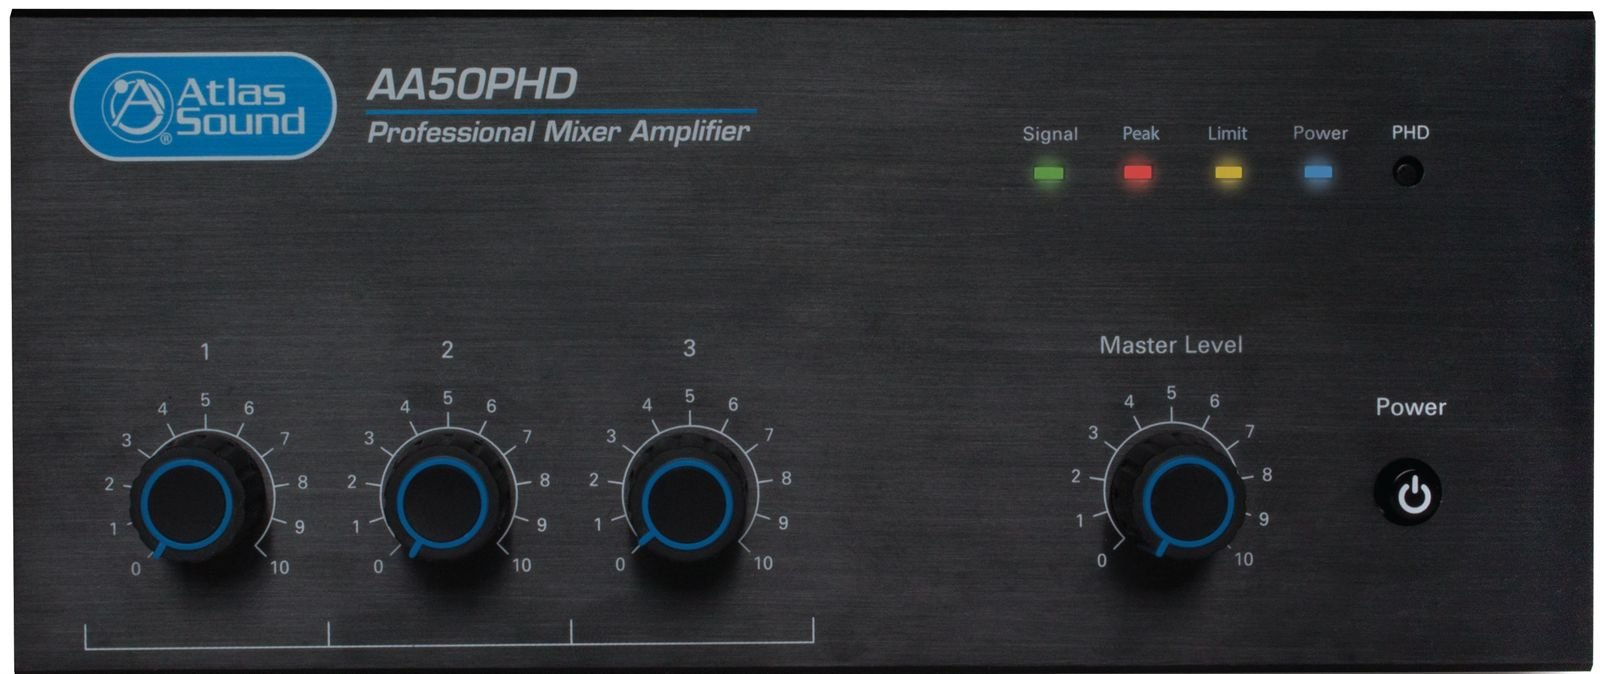 3-Input, 50W Mixer Amplifier with Automatic System Test (PHD)